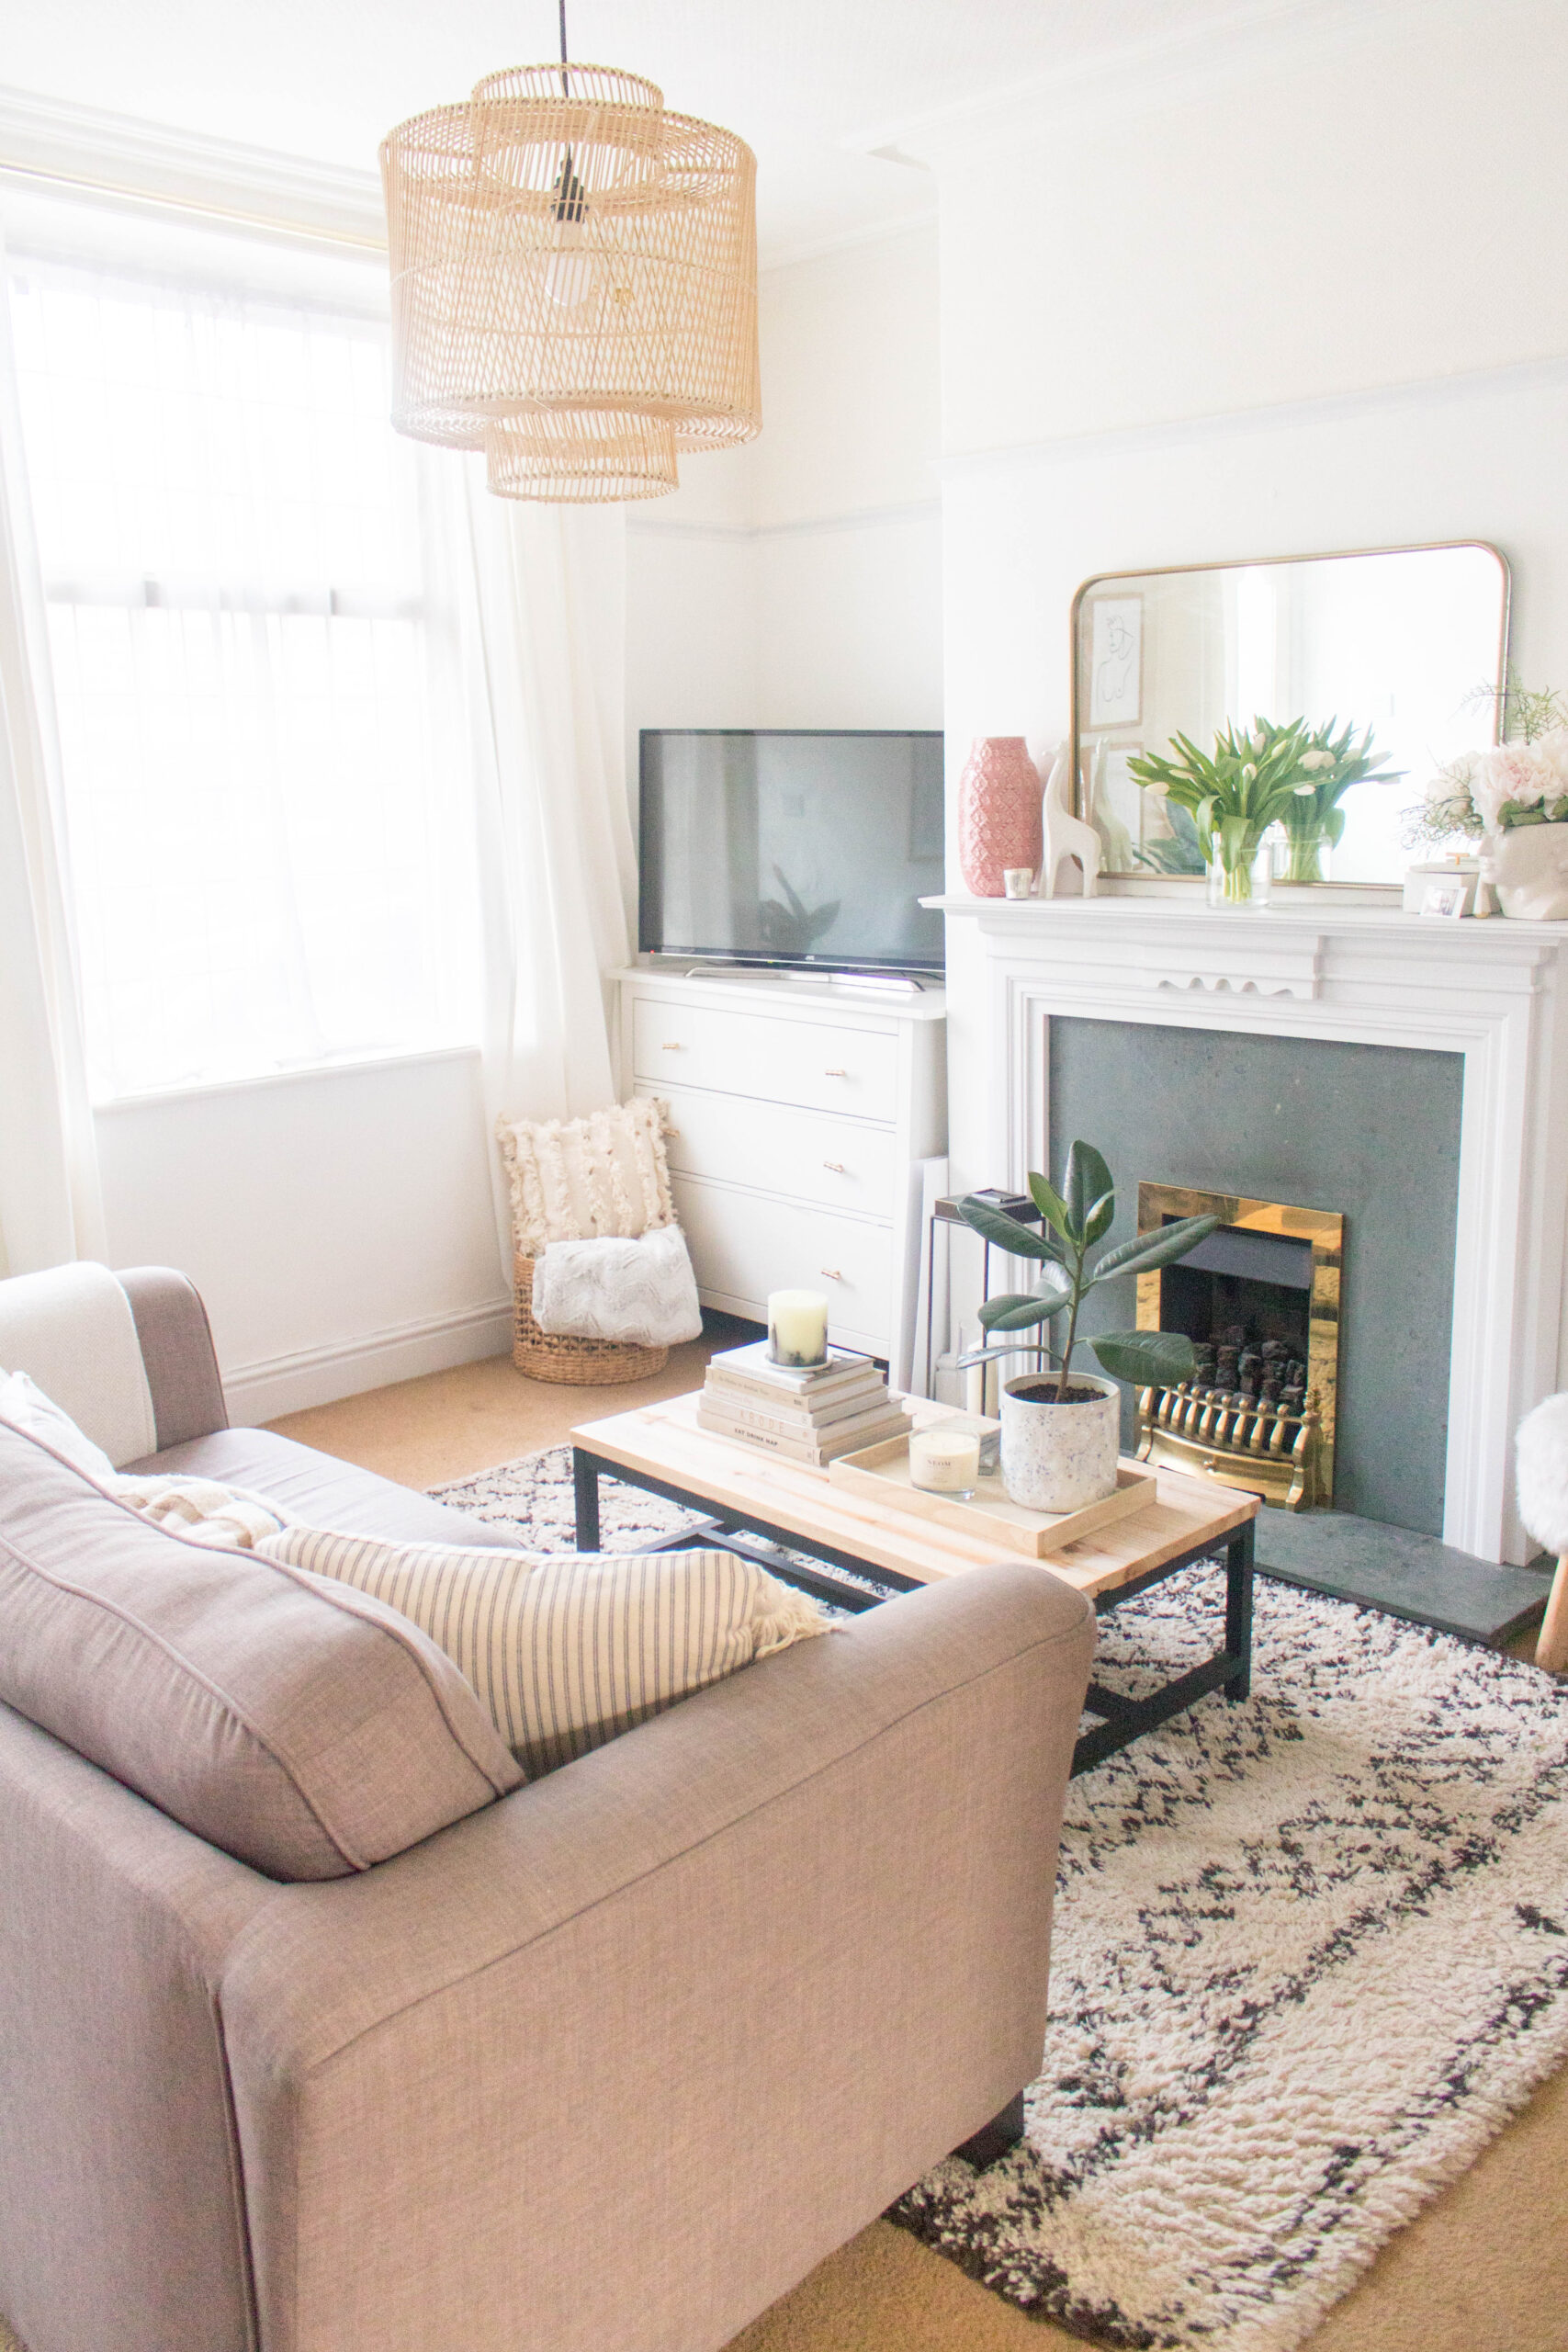 How to Make Your Living Room Look Pulled Together